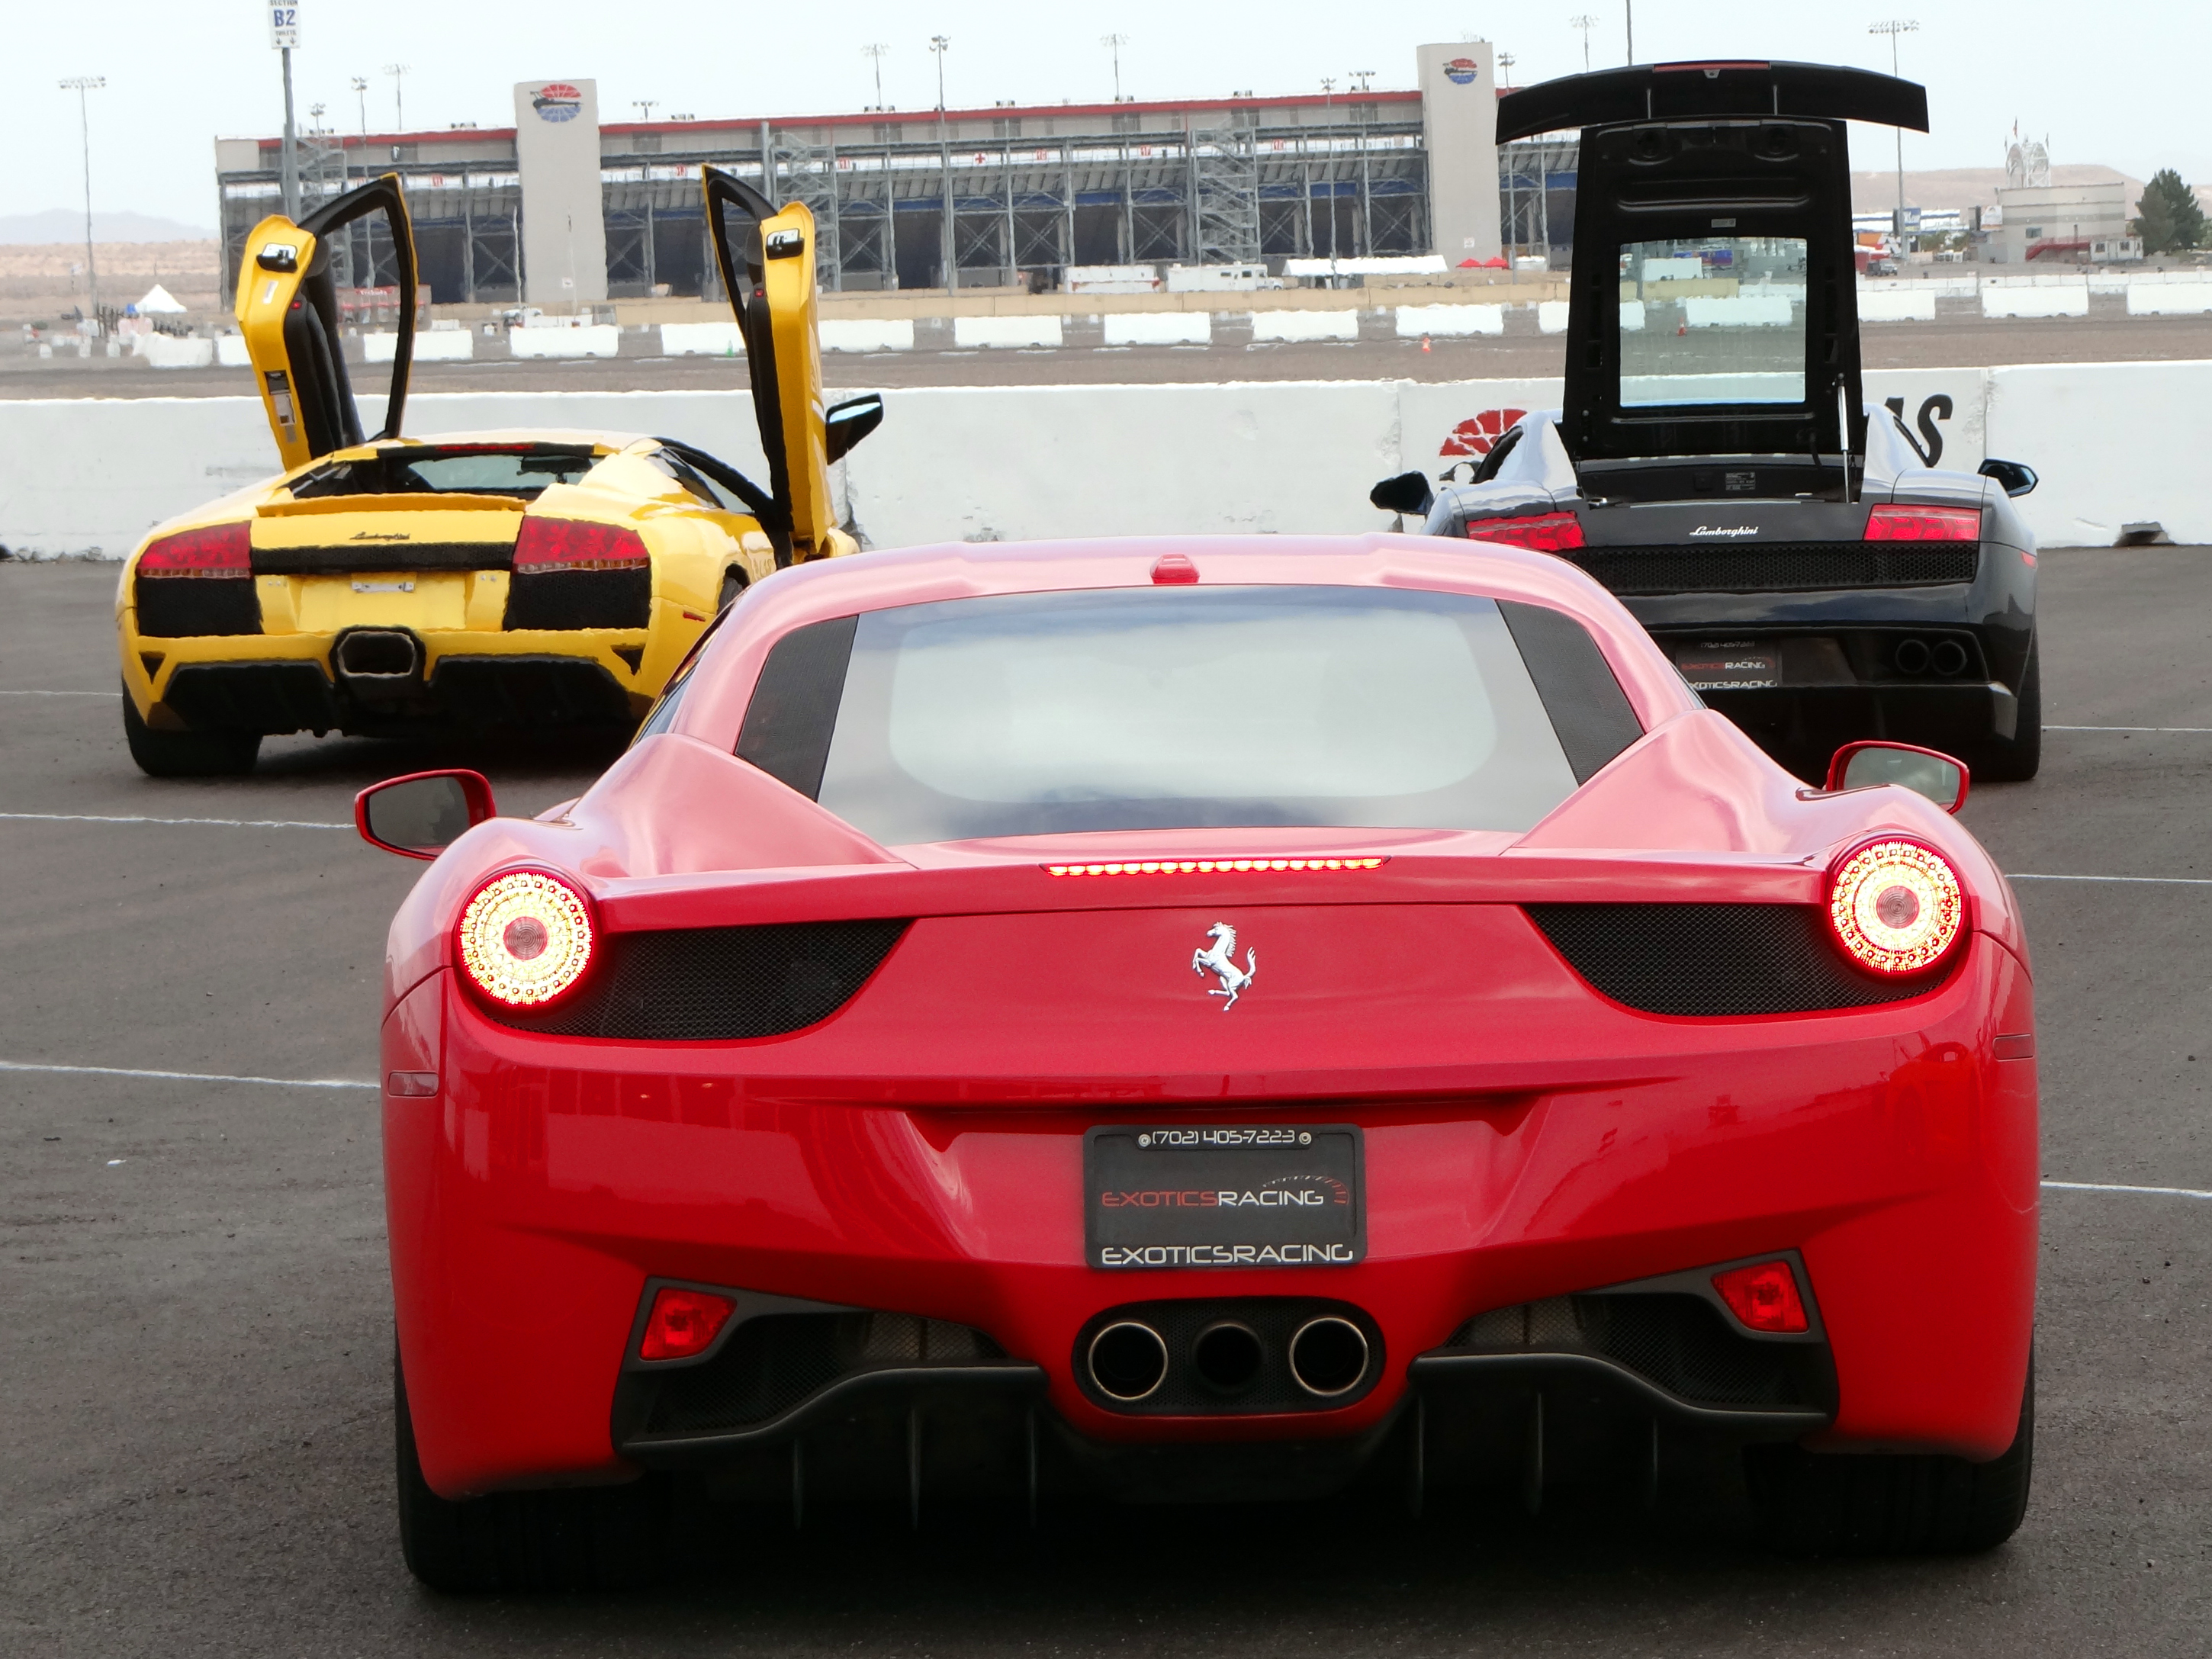 track ferrari hot rent img supercar laps shedule a theme experience racing race adventures vegas and porsche exotic